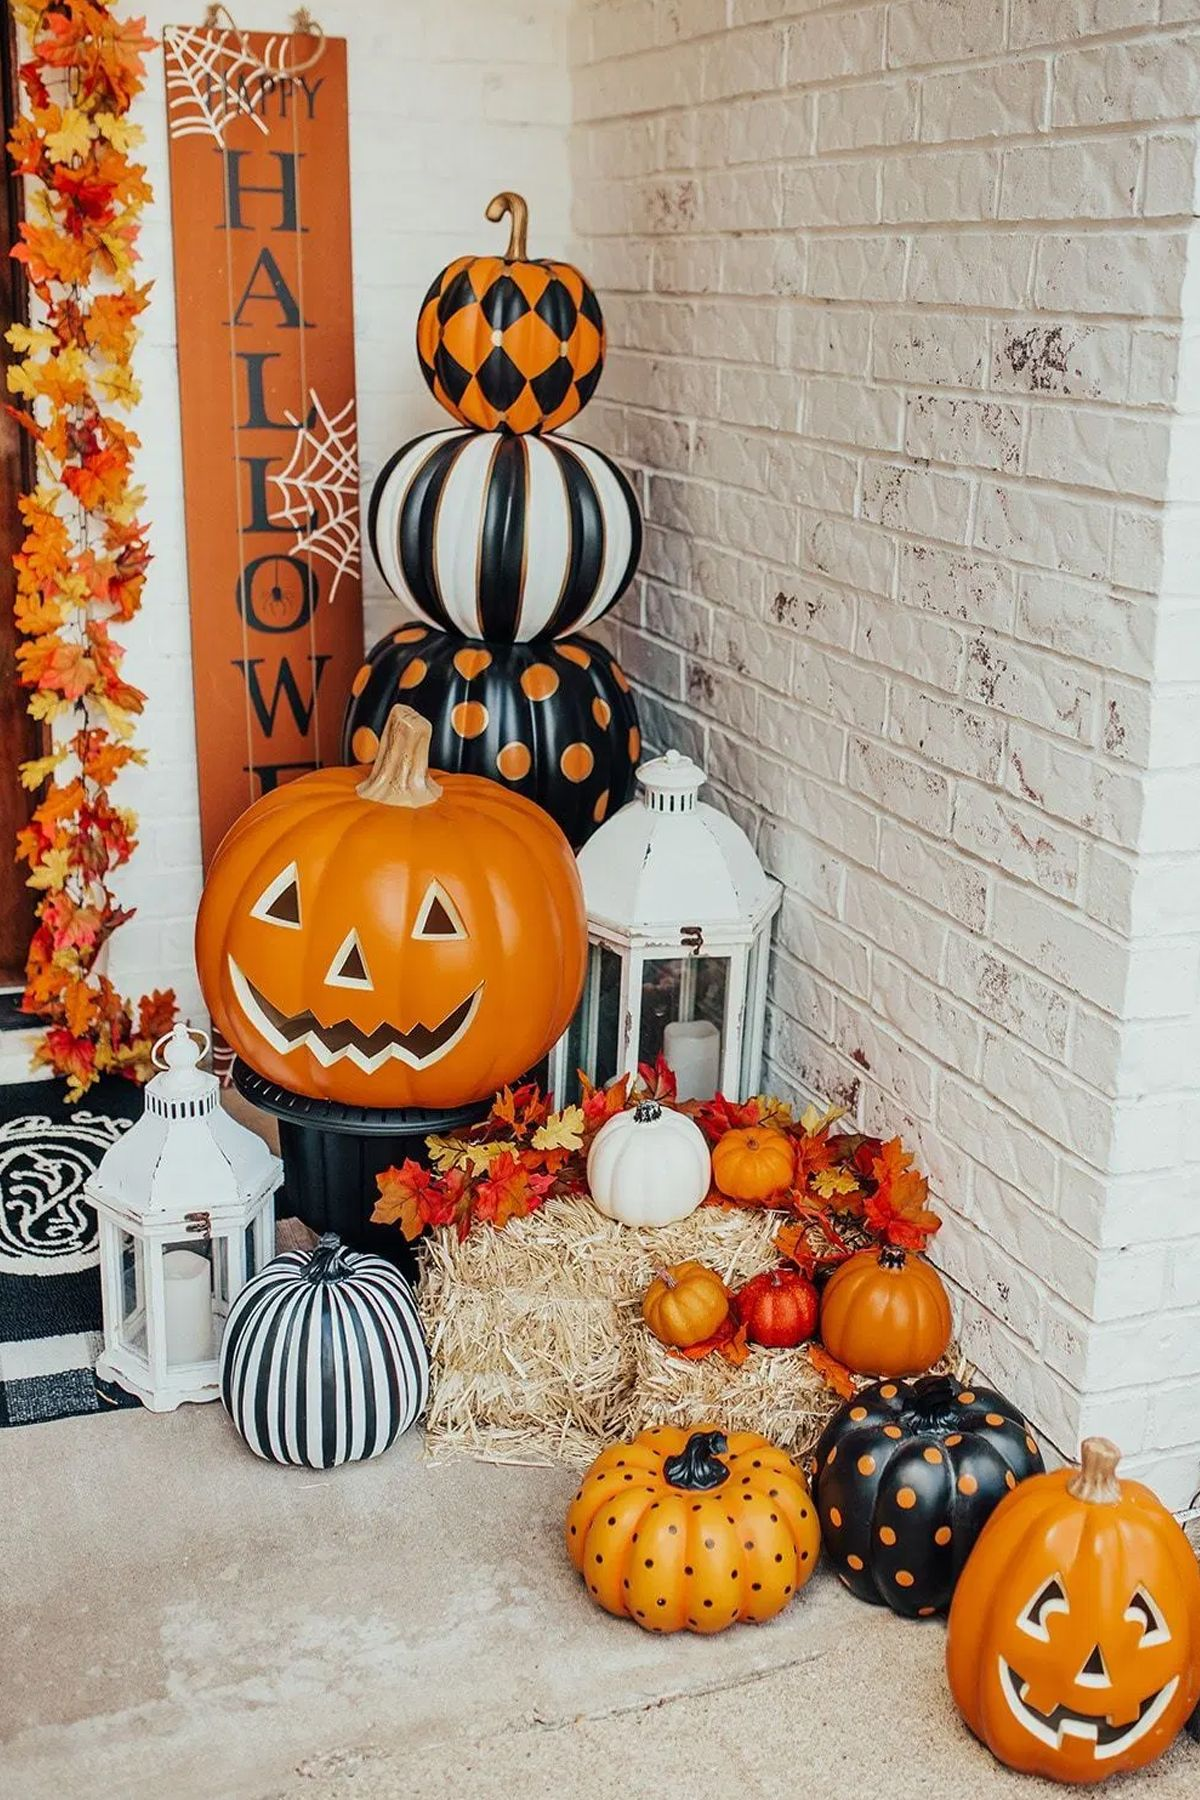 20 Halloween Decorations To Scare Them All